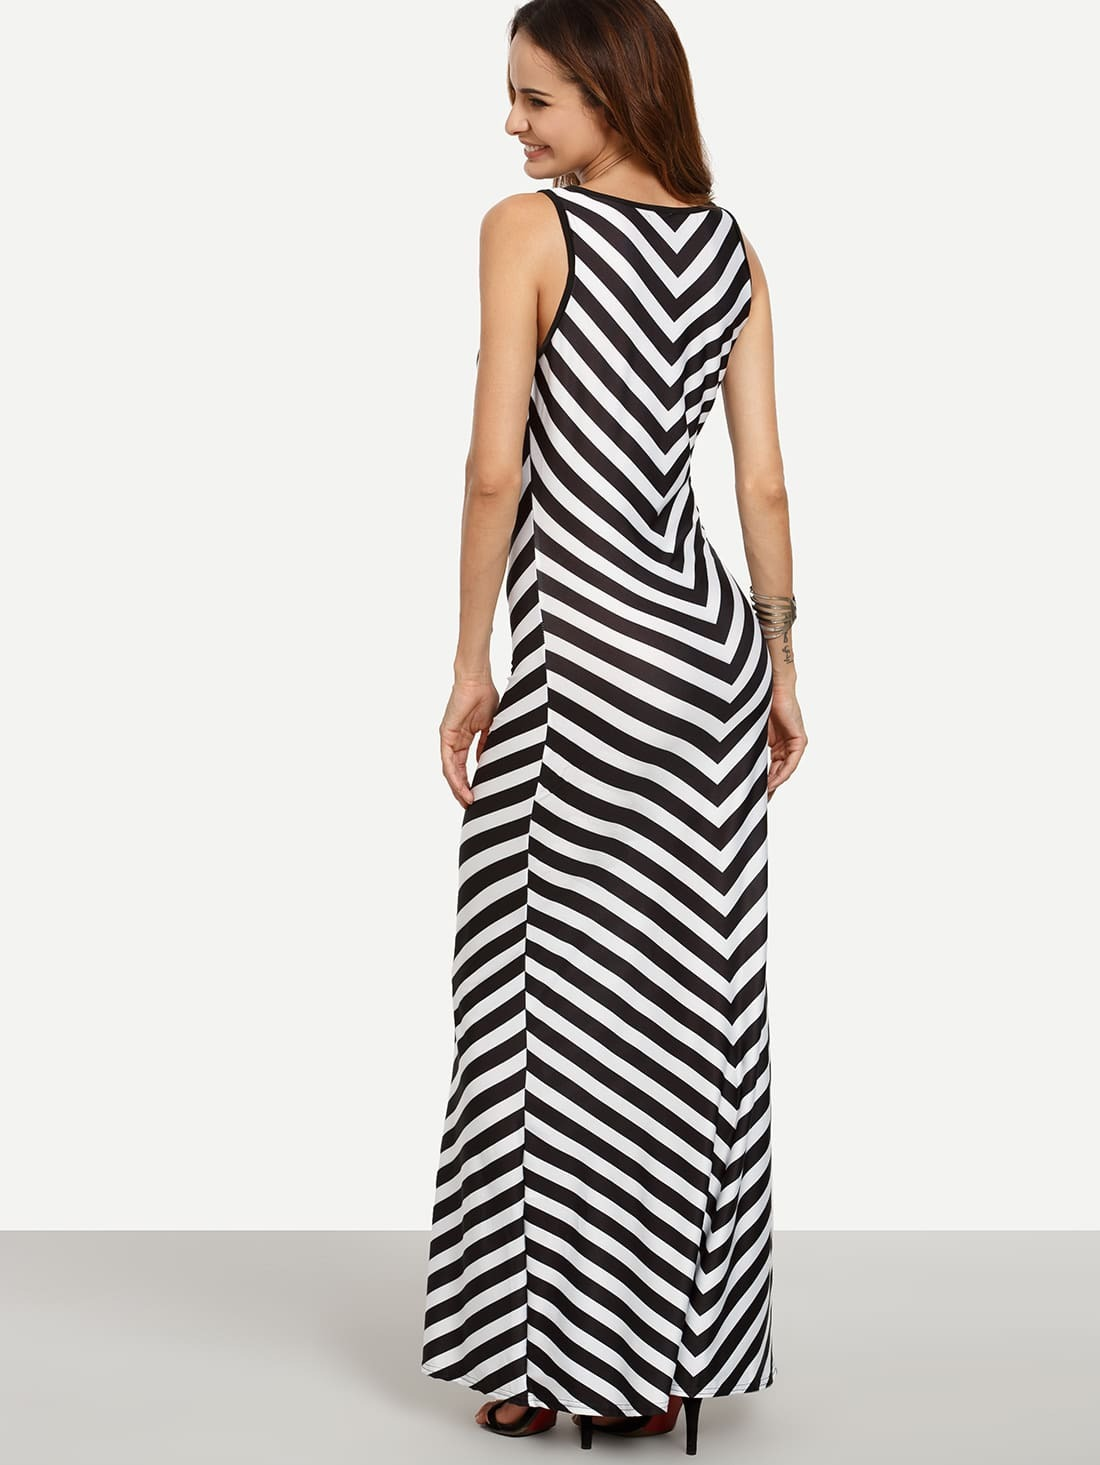 Grey Chevron Maxi Dress Clearance - The Pink Lily Boutique Find this Pin and more on I'd rock that by Amanda Khristine. The Pink Lily Boutique - Grey Chevron Maxi- put a shirt underneath it and i .